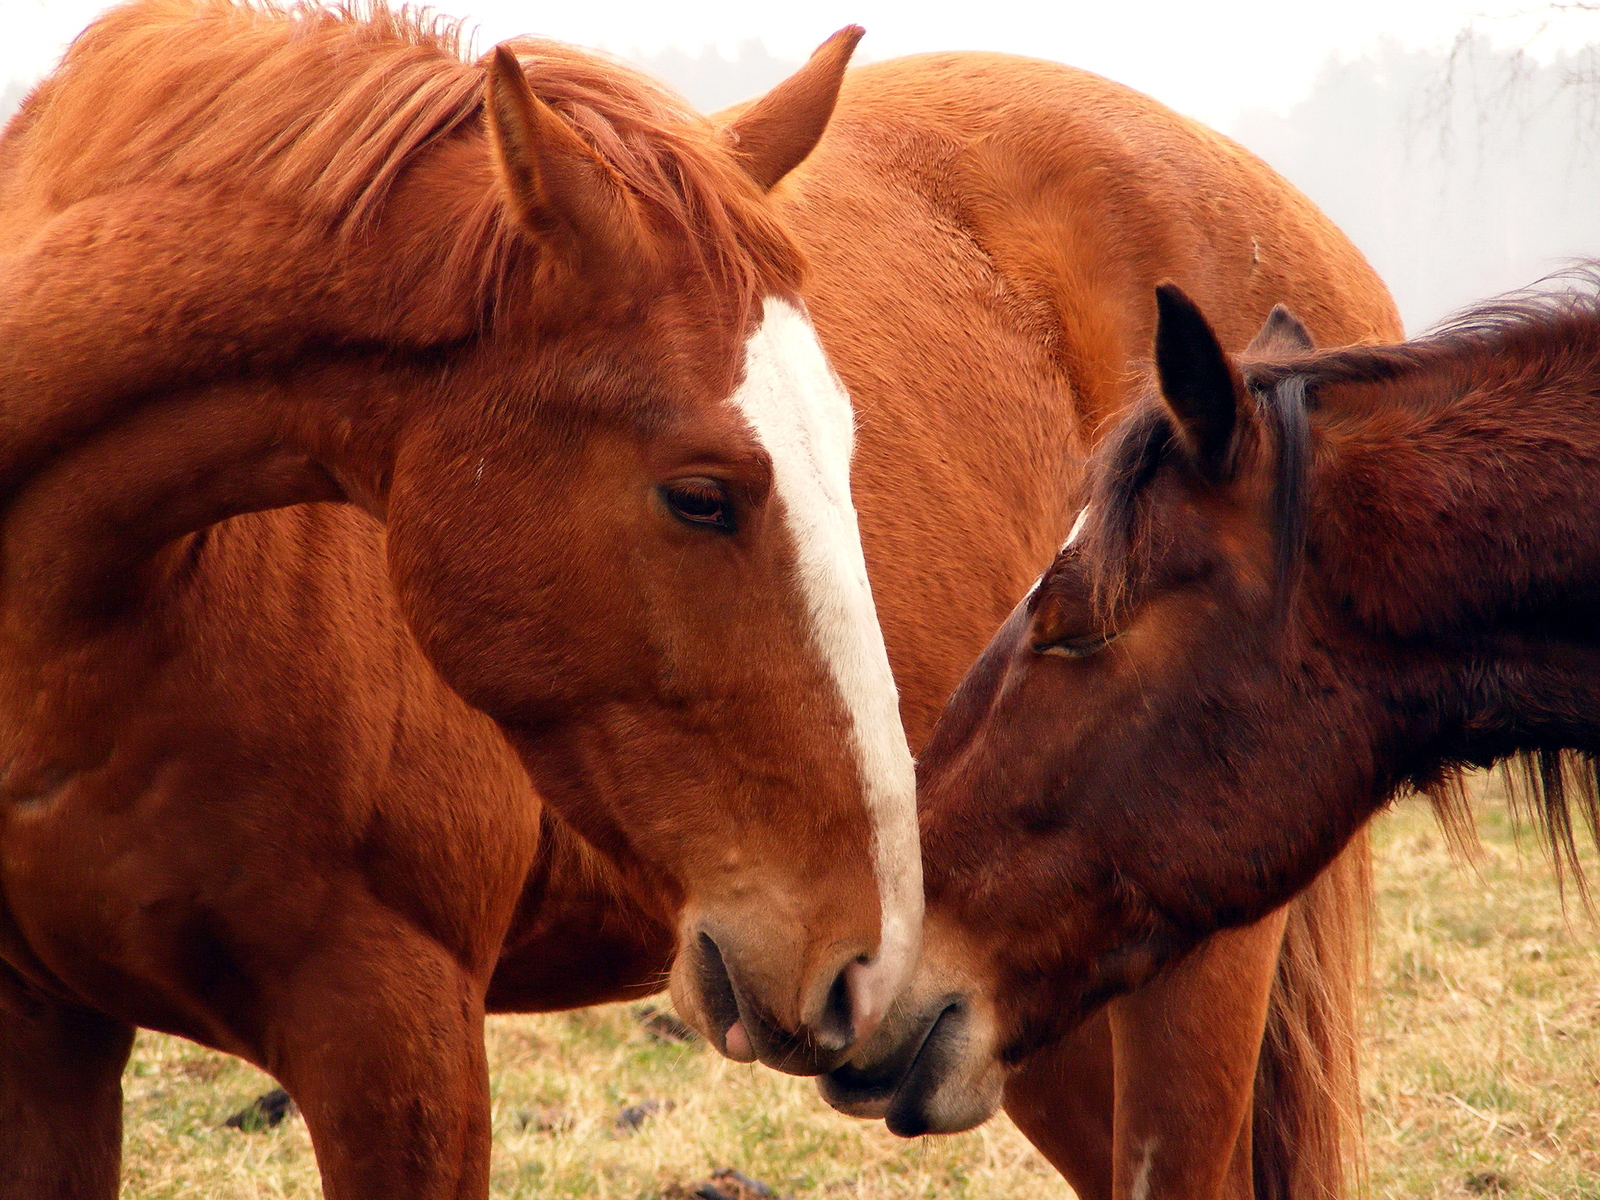 bigstock-Two-horses-nuzzling-each-other-34677842.jpg